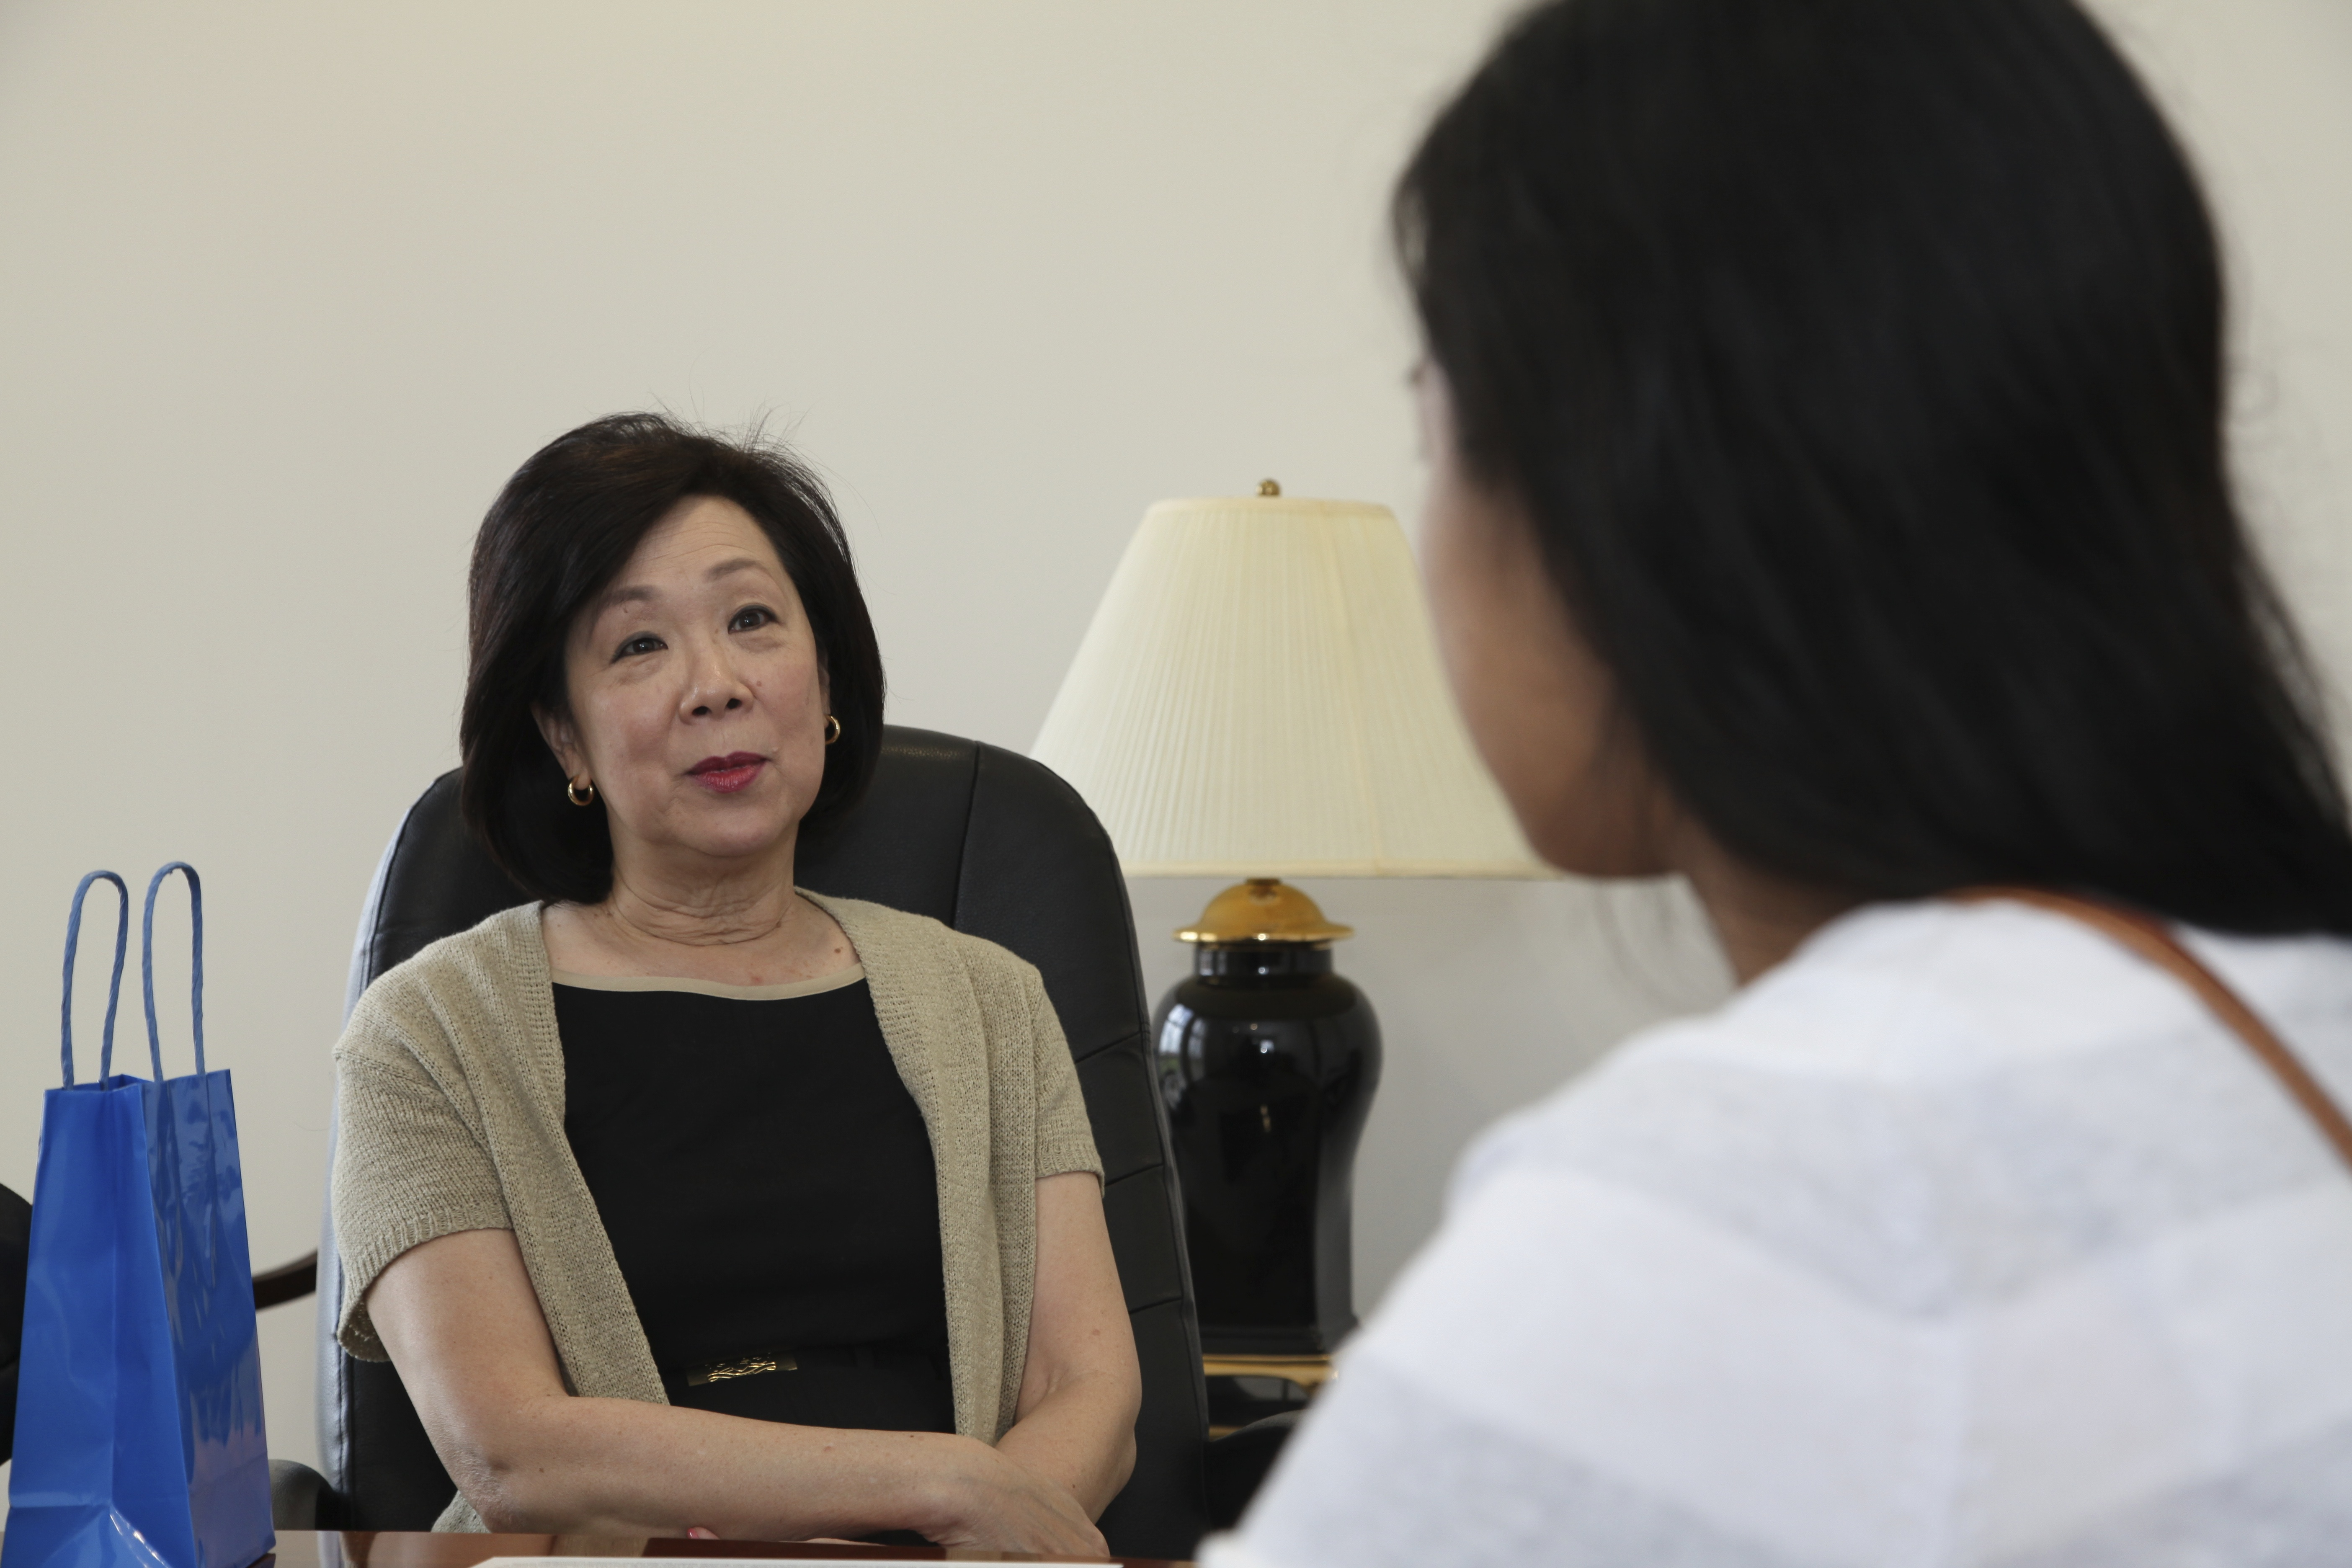 linda wu oral history interview and transcript wrc03571 interviewee1 jpg size 3 414mb format jpeg image description interviewee photo